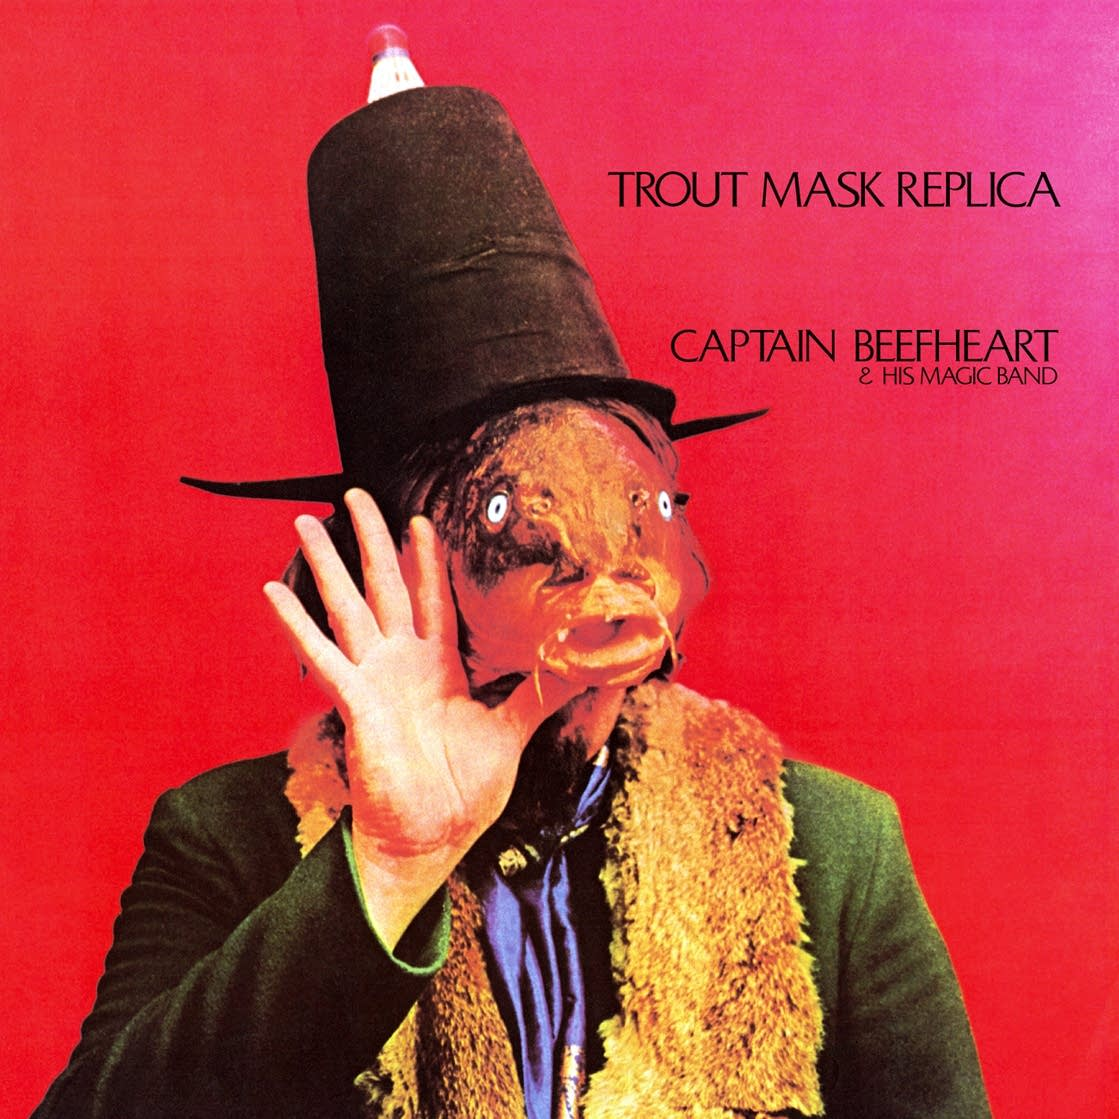 Captain Beefheart's 'Trout Mask Replica' album cover.